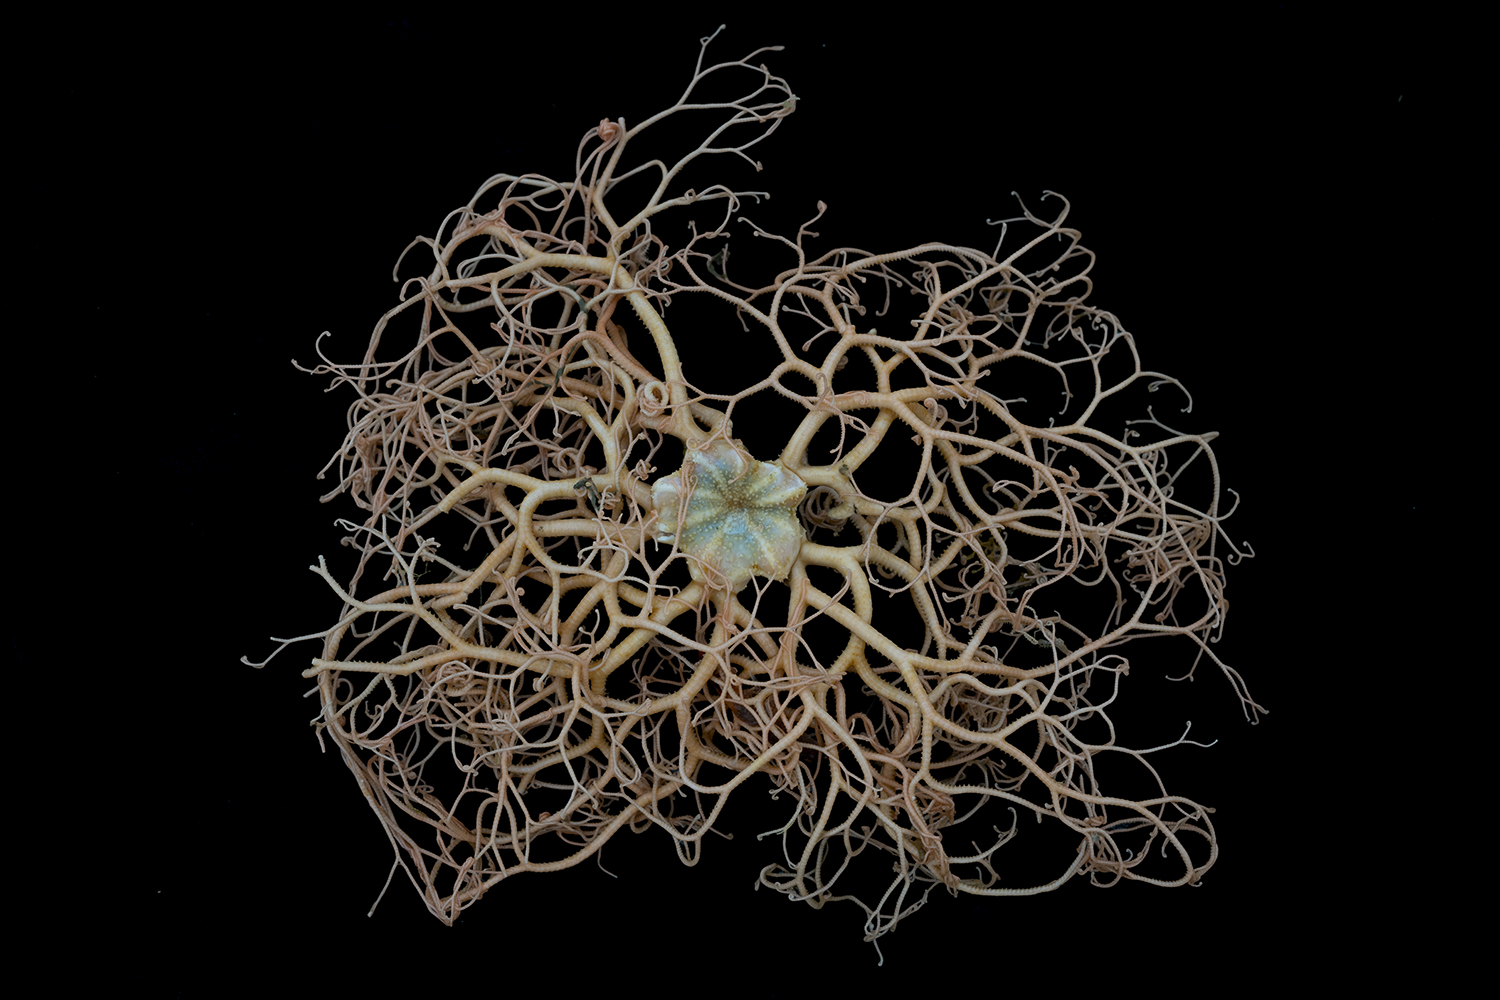 Gorgonocephalus chilensis basket star (ventral view) from off Lecointe Island at around 570 meters depth, Gerlache Strait, Antarctic Peninsula. Listed as a Vulnerable Marine Ecosystem indicator taxon by the Commission that governs the Antarctic Ocean.